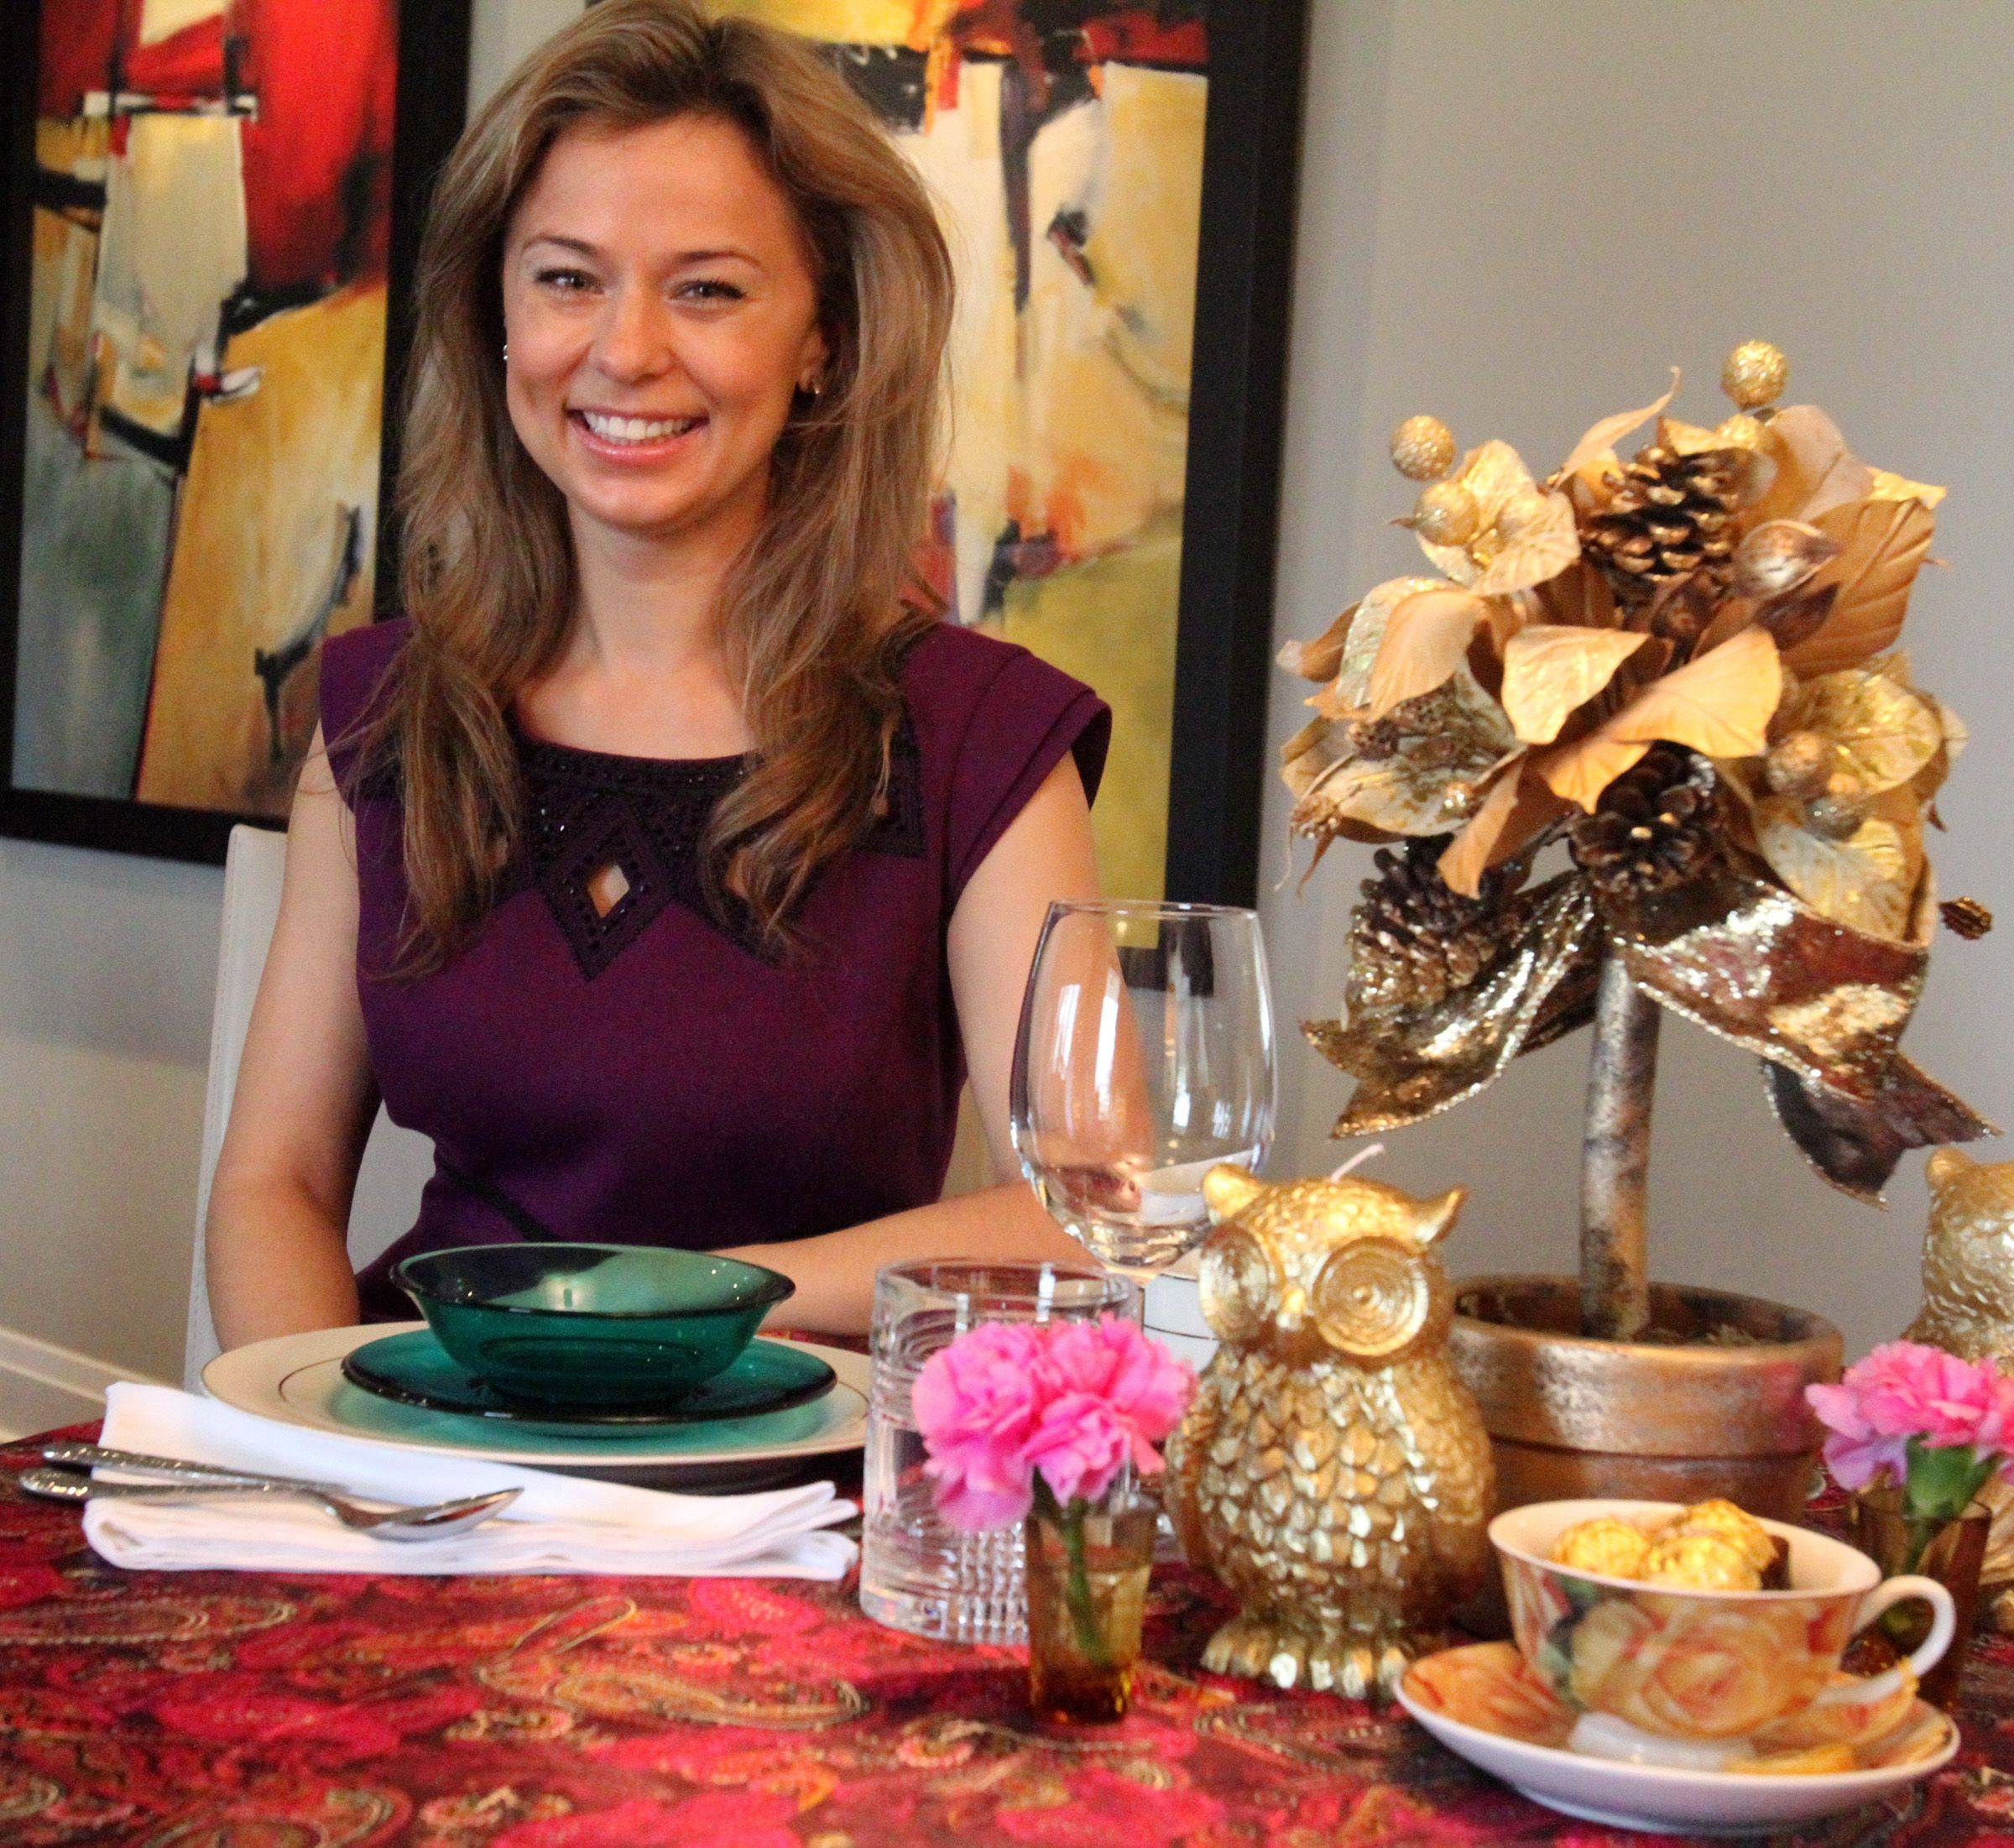 Gold is classic, but Edyta Czajkowska used her favorite turquoise bowls and plates and hot pink fabric for a different take on Christmas colors.